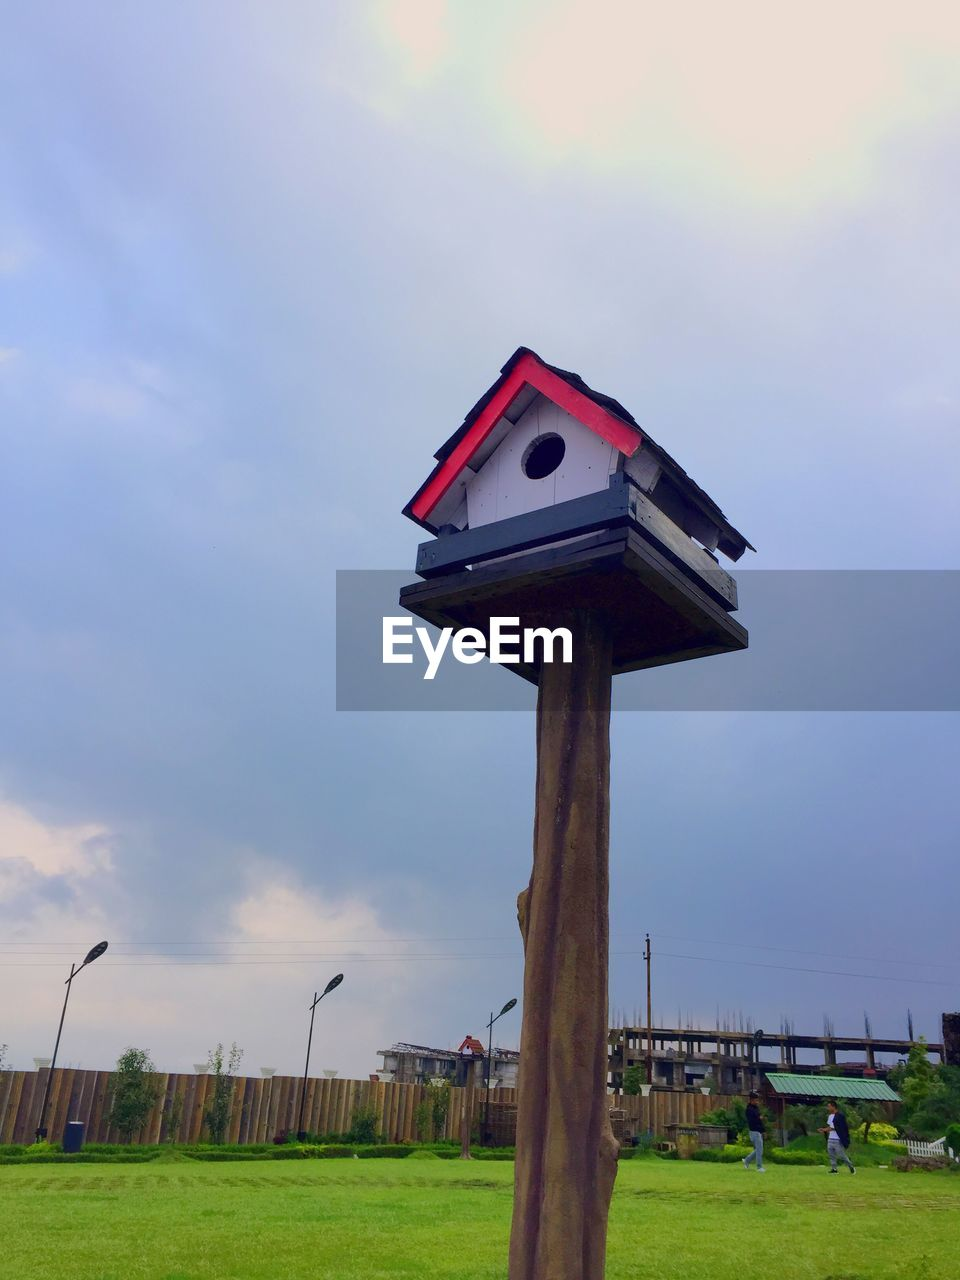 sky, grass, cloud - sky, nature, plant, day, architecture, no people, built structure, green color, outdoors, field, land, red, birdhouse, wood - material, building exterior, low angle view, security, protection, wooden post